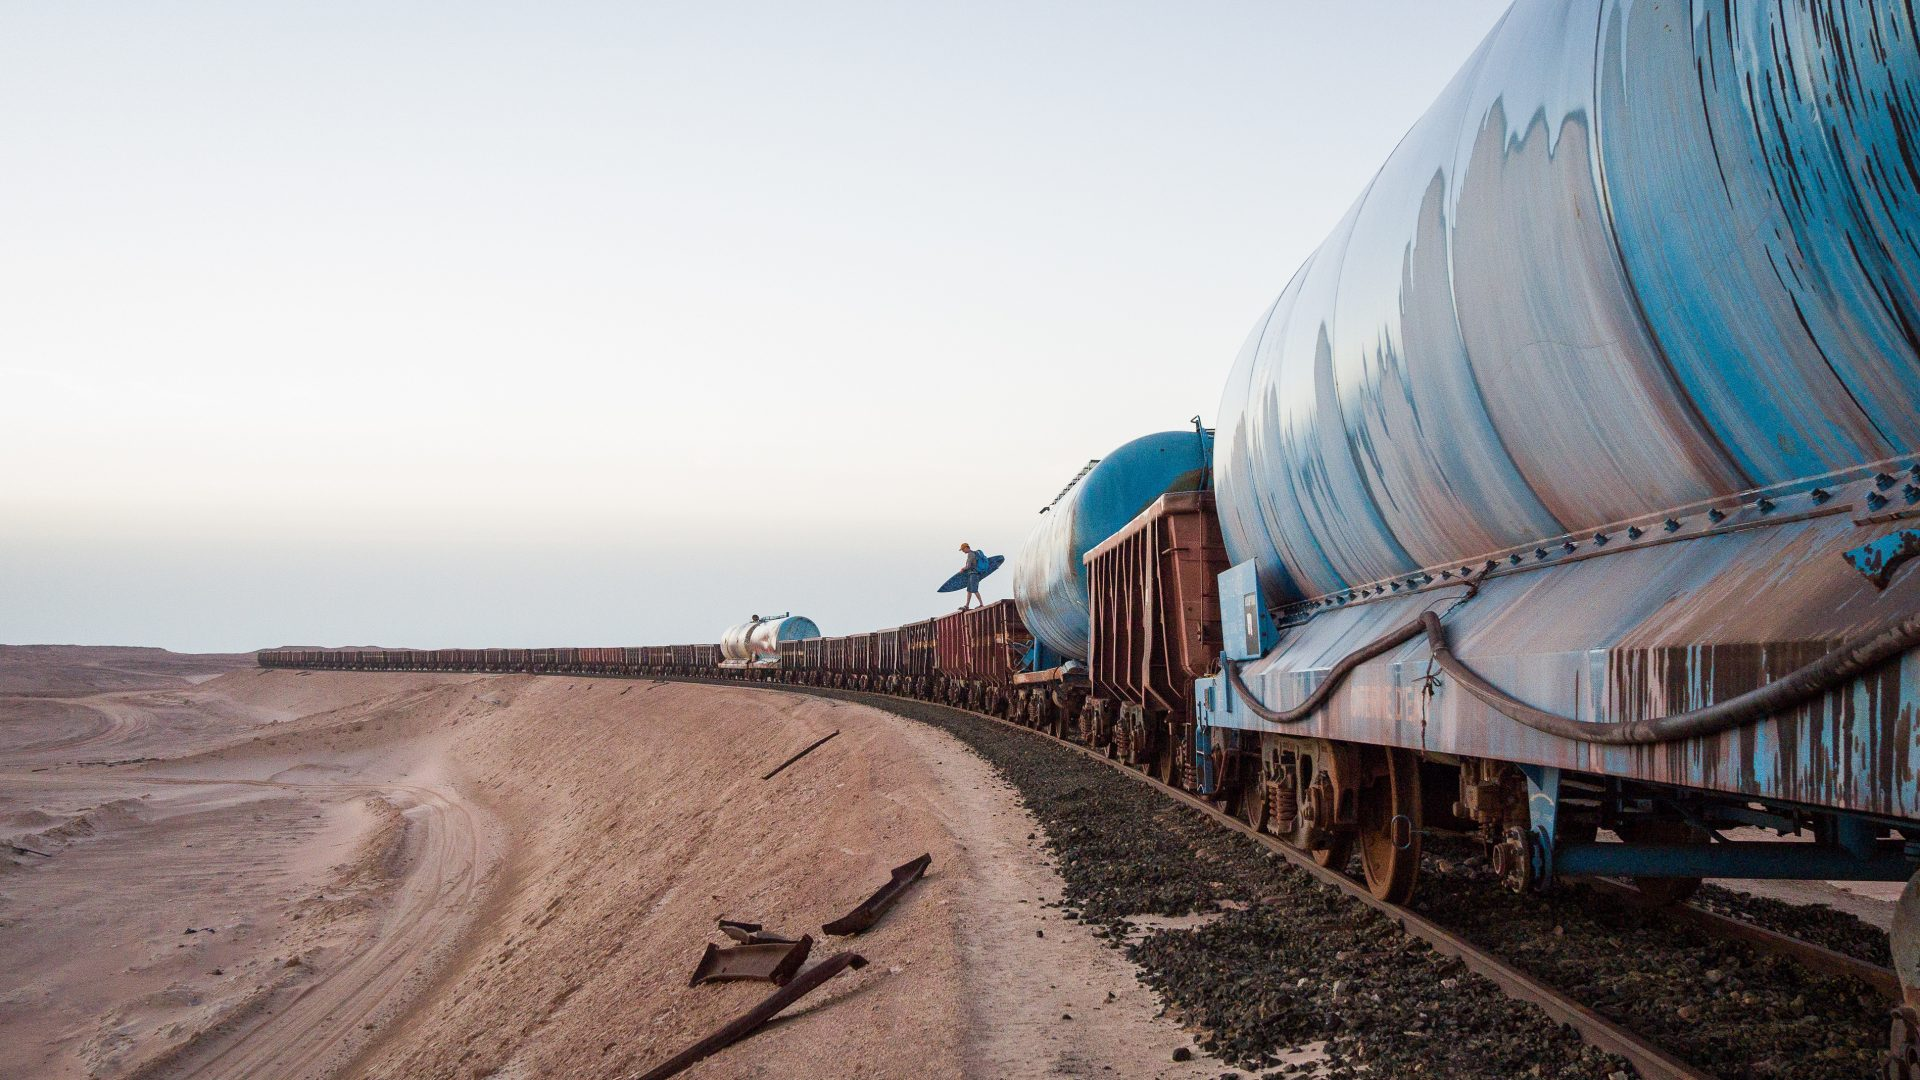 A small figure can be seen hitching a ride onboard one of the longest trains in the world.